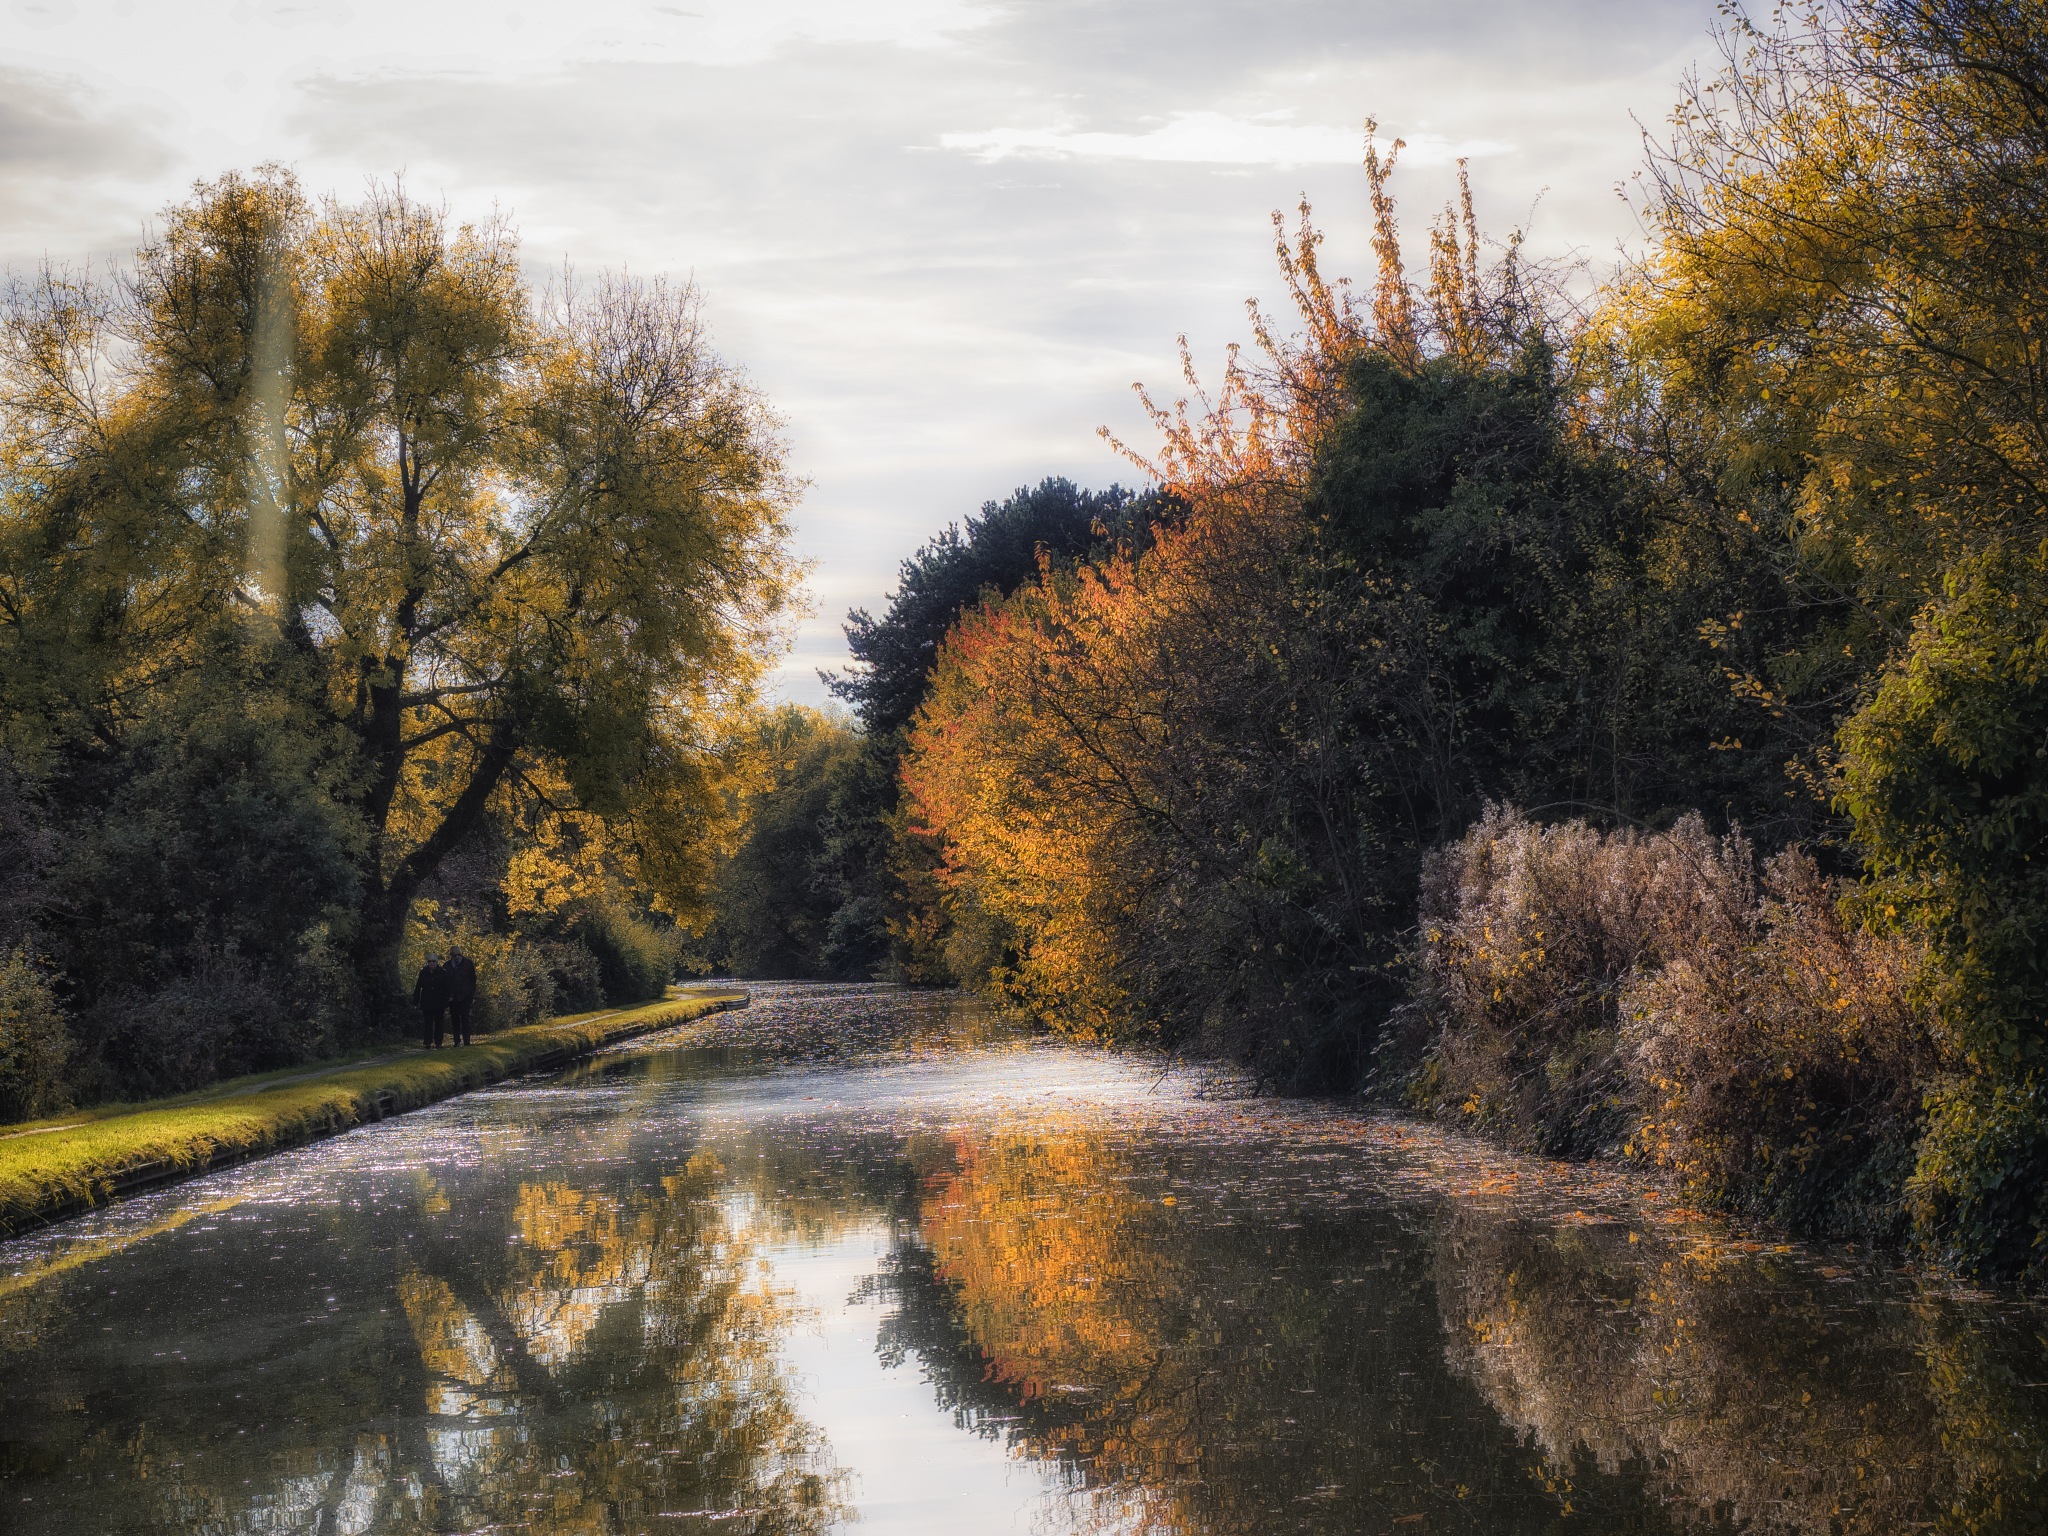 Autumn Canal Reflections by Sarah Walters